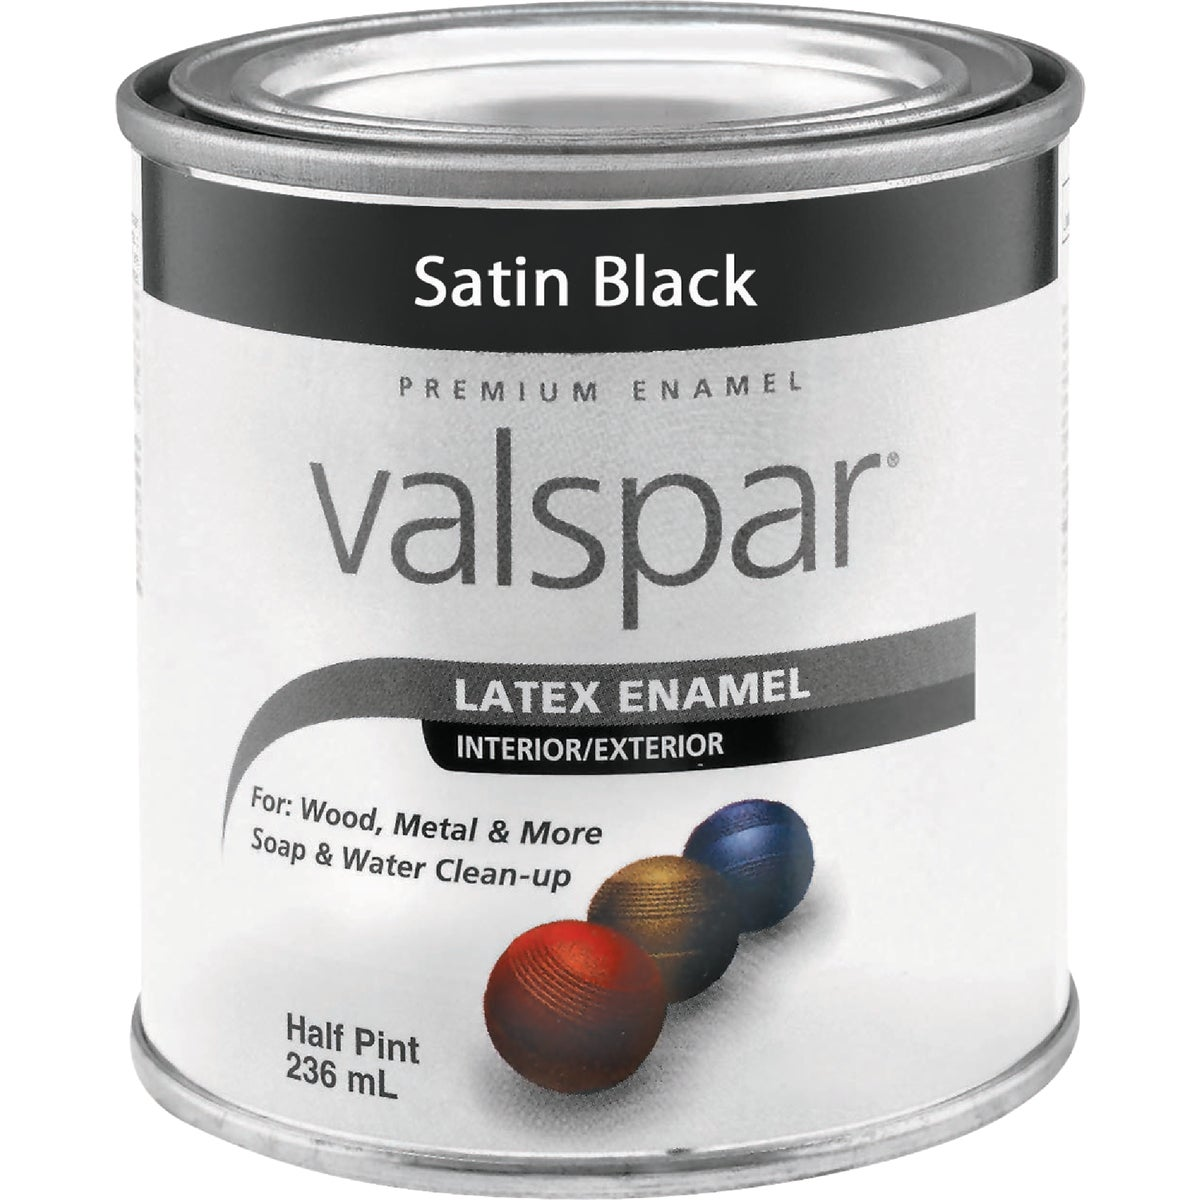 LTX SATIN BLACK ENAMEL - 410.0065049.003 by Valspar Corp